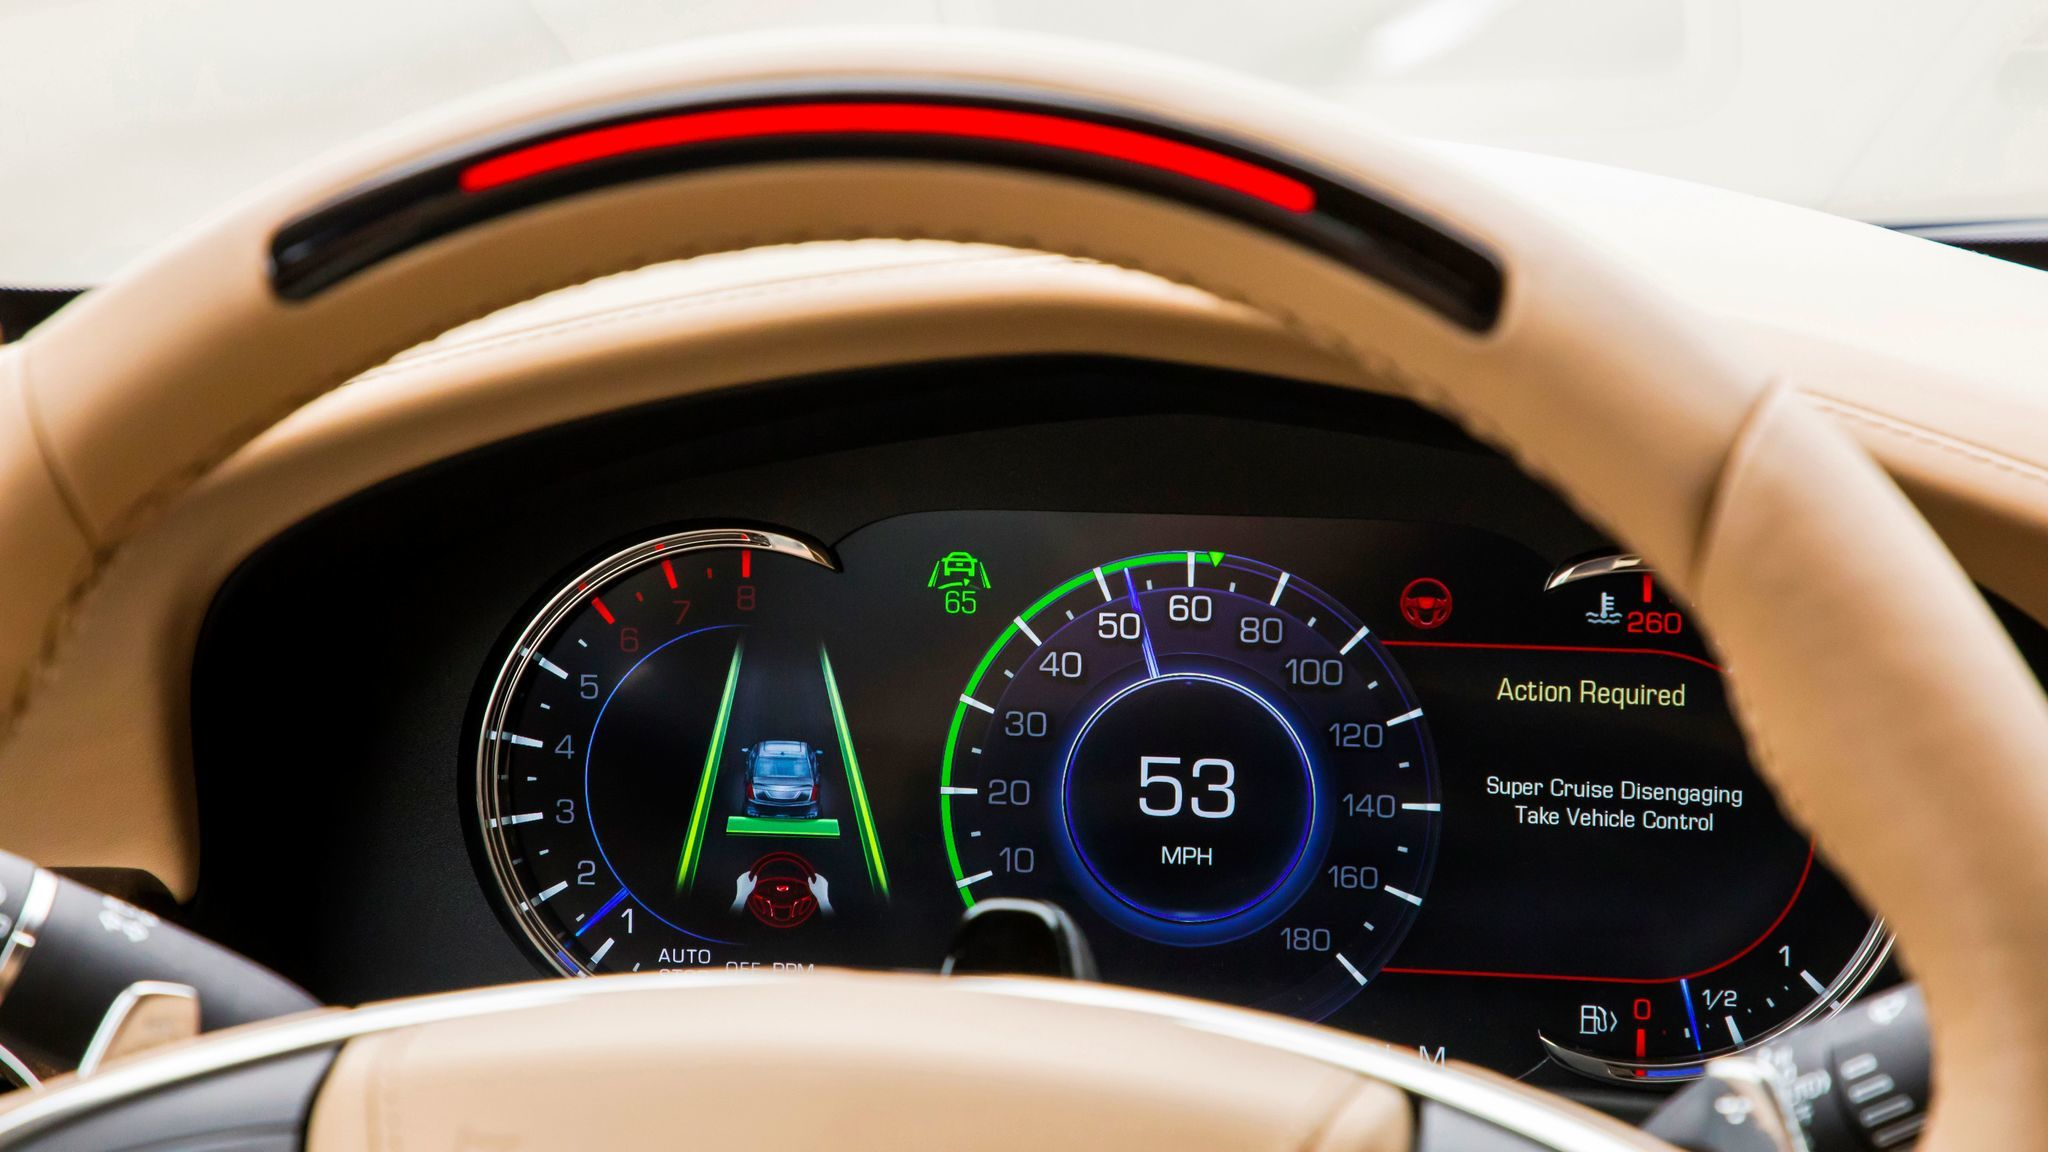 The light bar turns red when the driver needs to turn attention back to the road. If there's no response, a chime sends an audio warning and the red light flashes. A voice alert follows, and soon the car will ease to a stop. The camera can be seen in front of the speedometer.